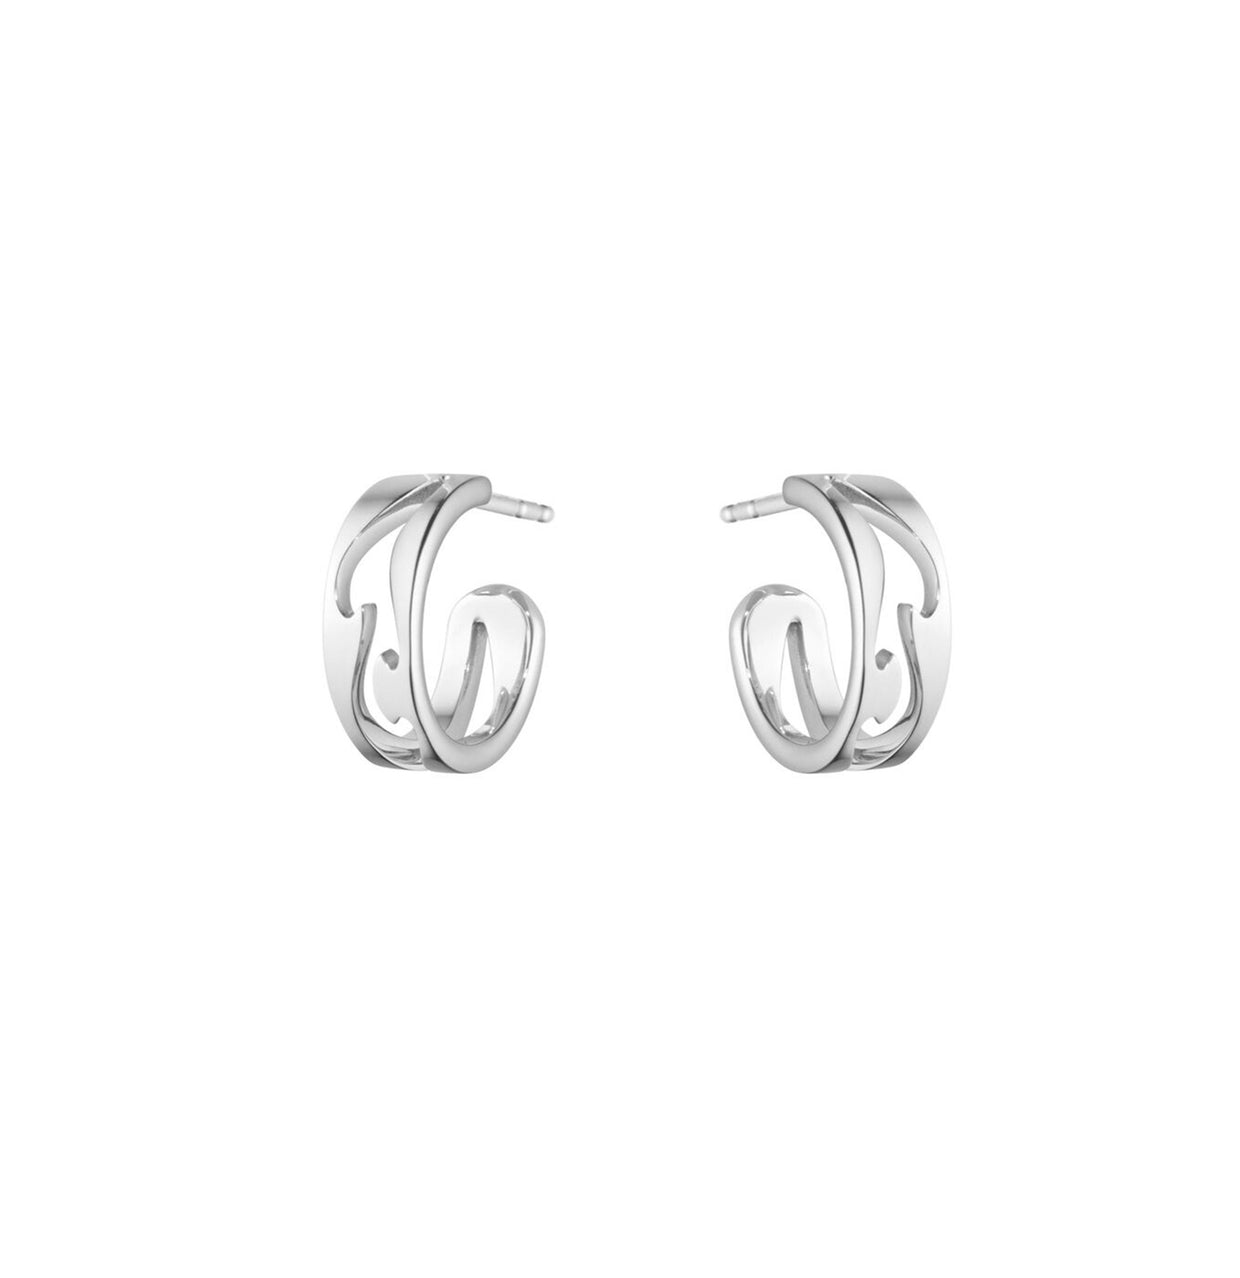 Georg Jensen Fusion Open Hoop Earrings in 18ct White Gold-Hamilton & Inches